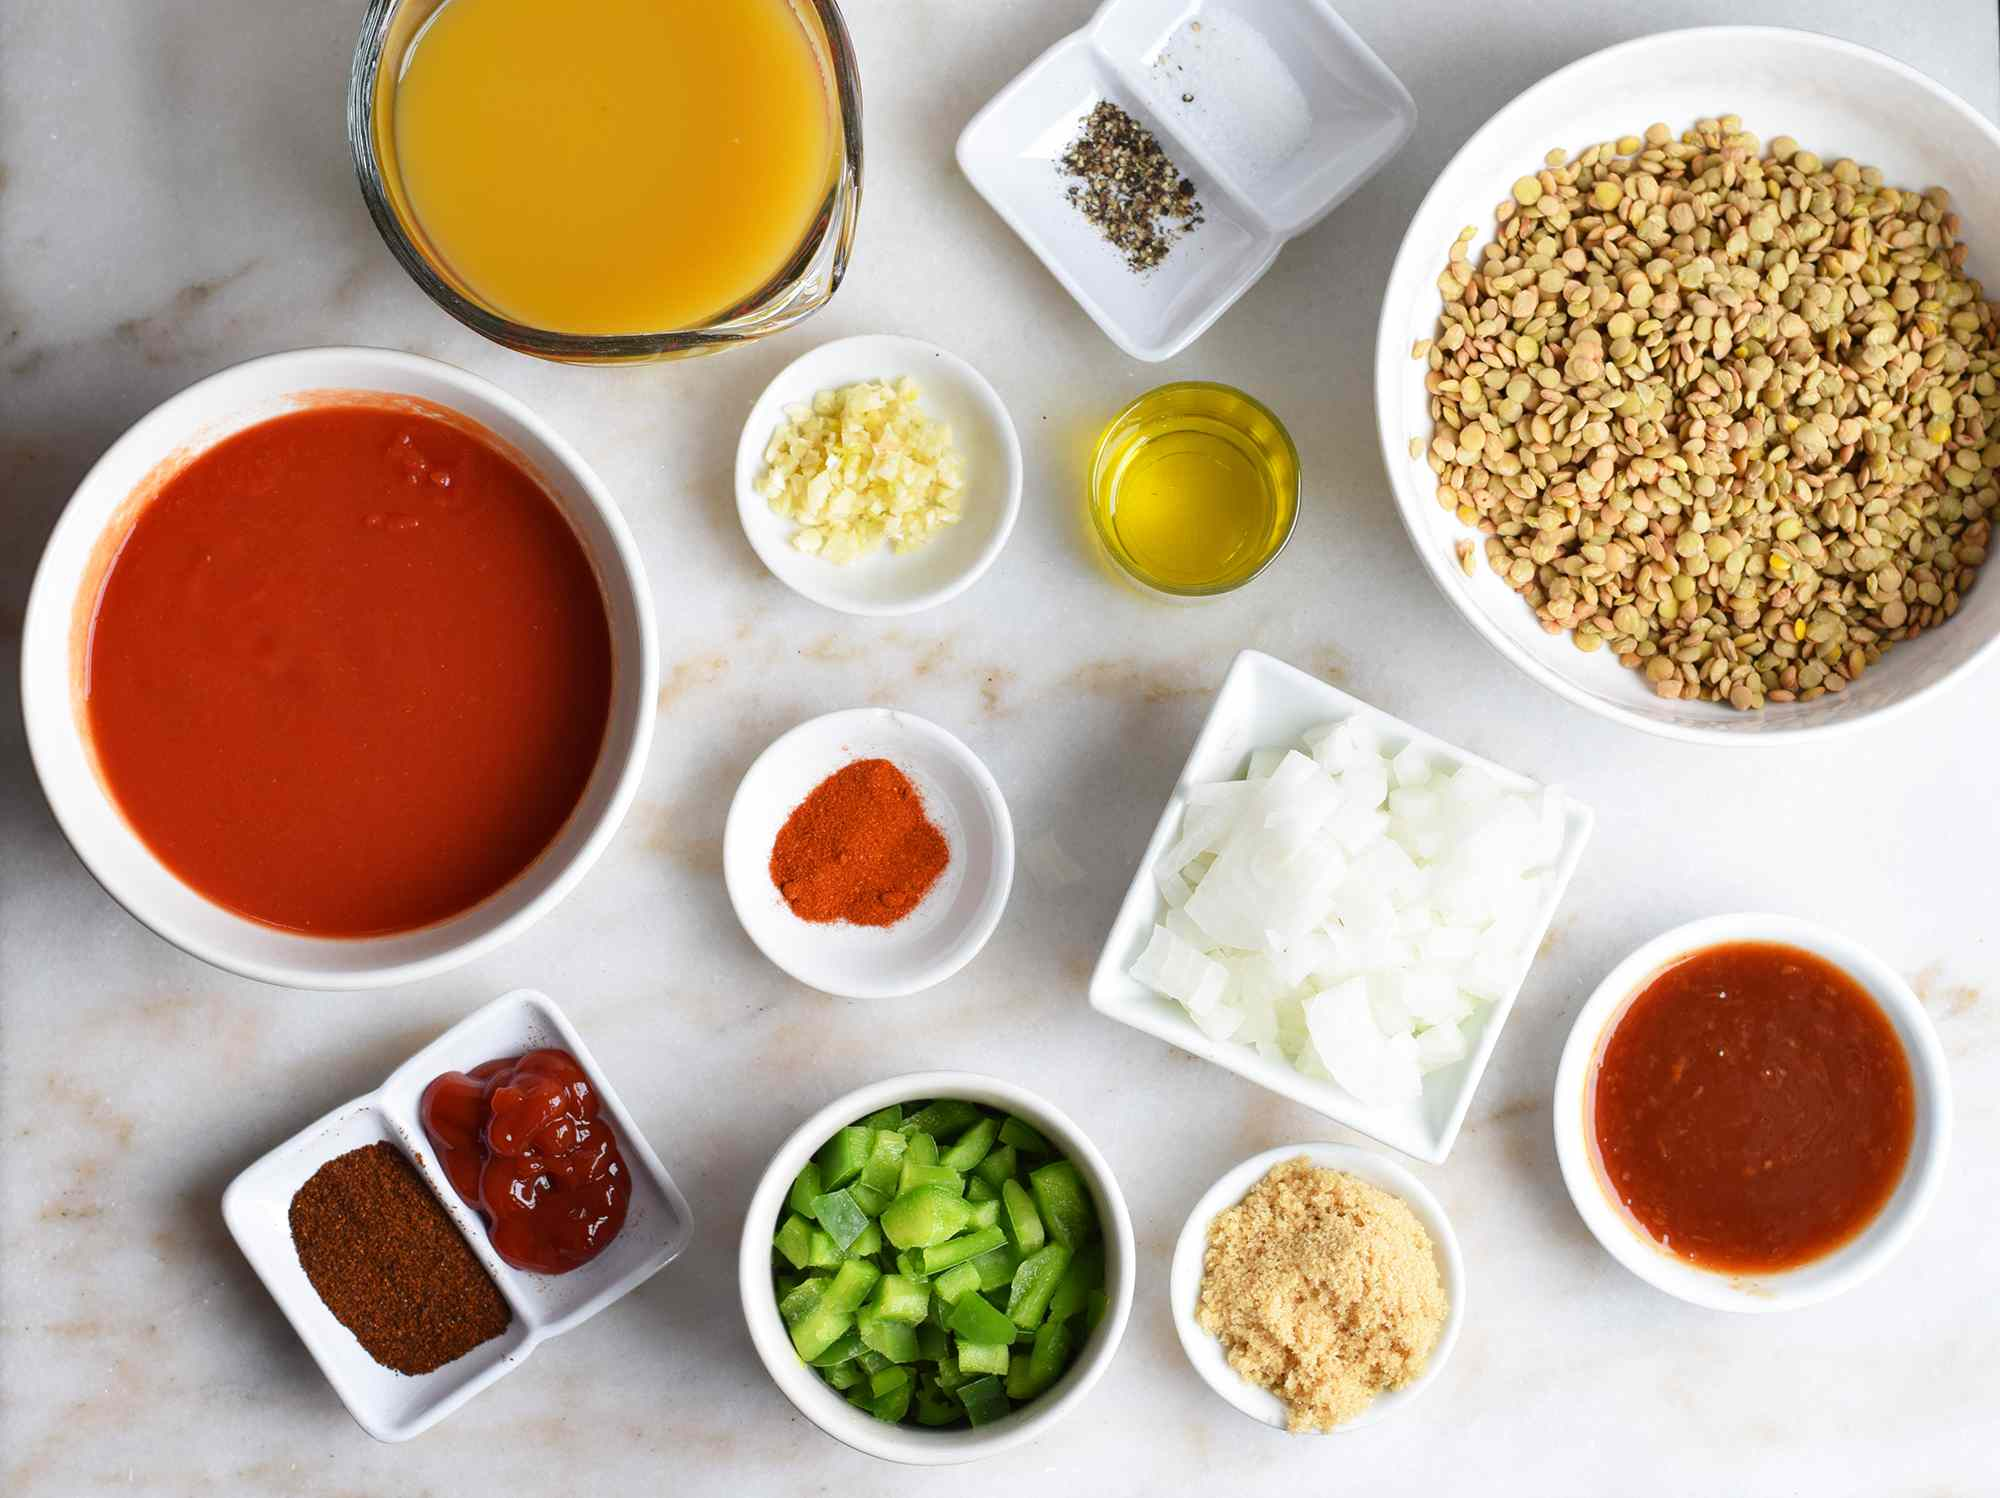 ingredients for lentil sloppy joes on a marble board